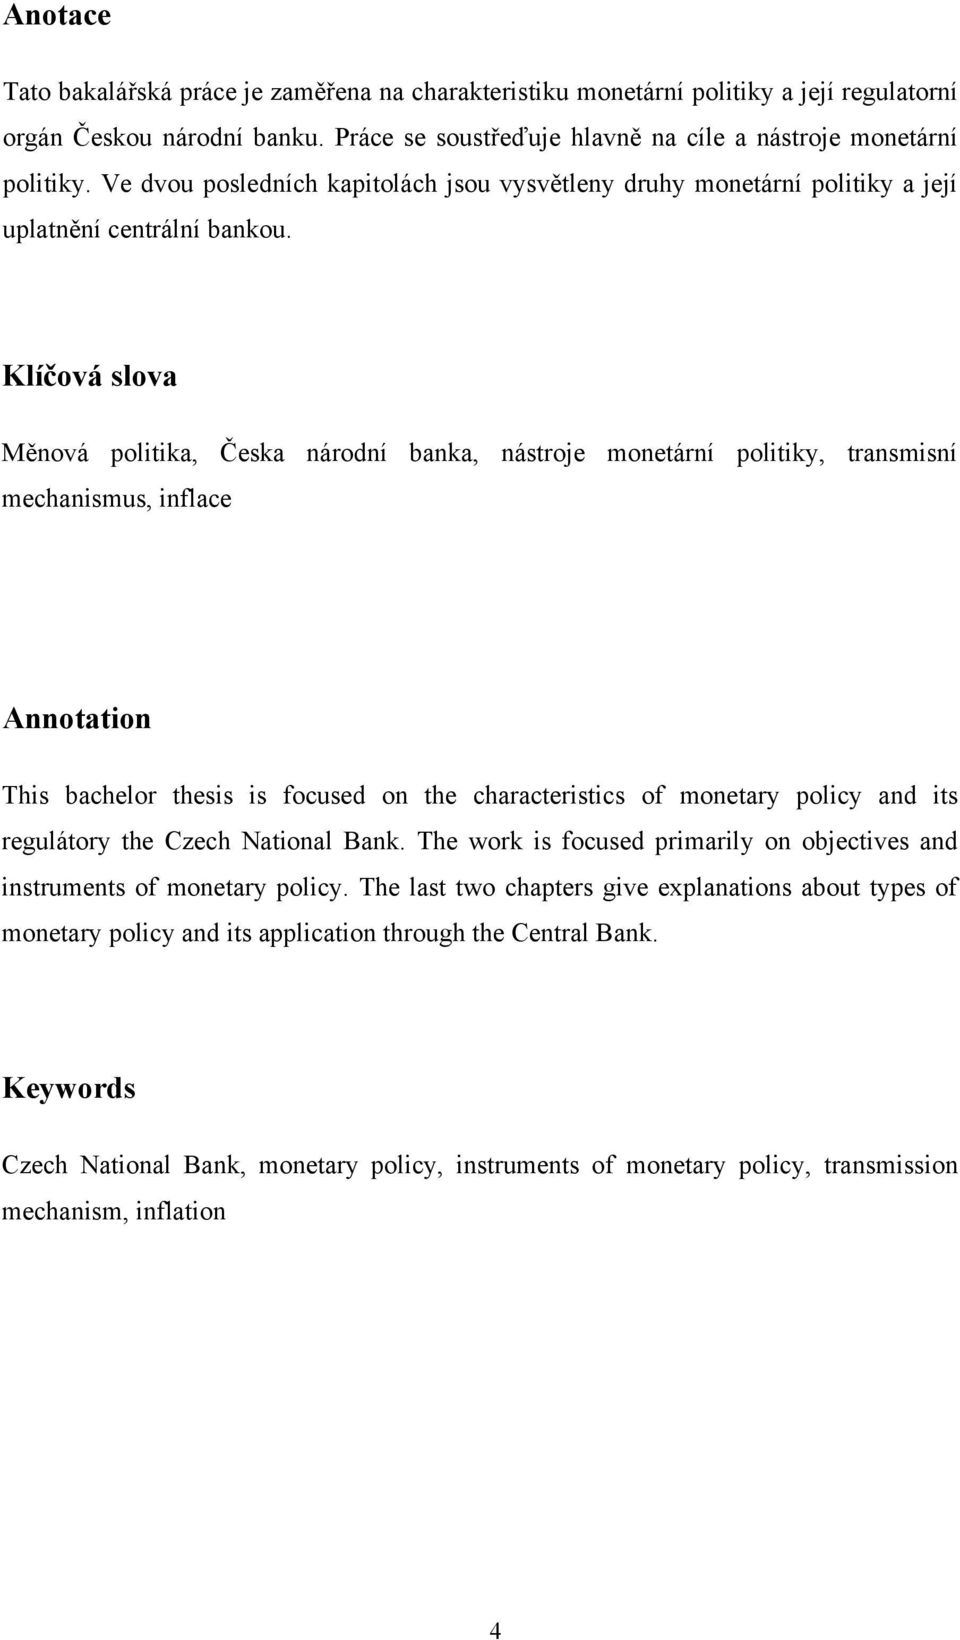 Klíčová slova Měnová politika, Česka národní banka, nástroje monetární politiky, transmisní mechanismus, inflace Annotation This bachelor thesis is focused on the characteristics of monetary policy